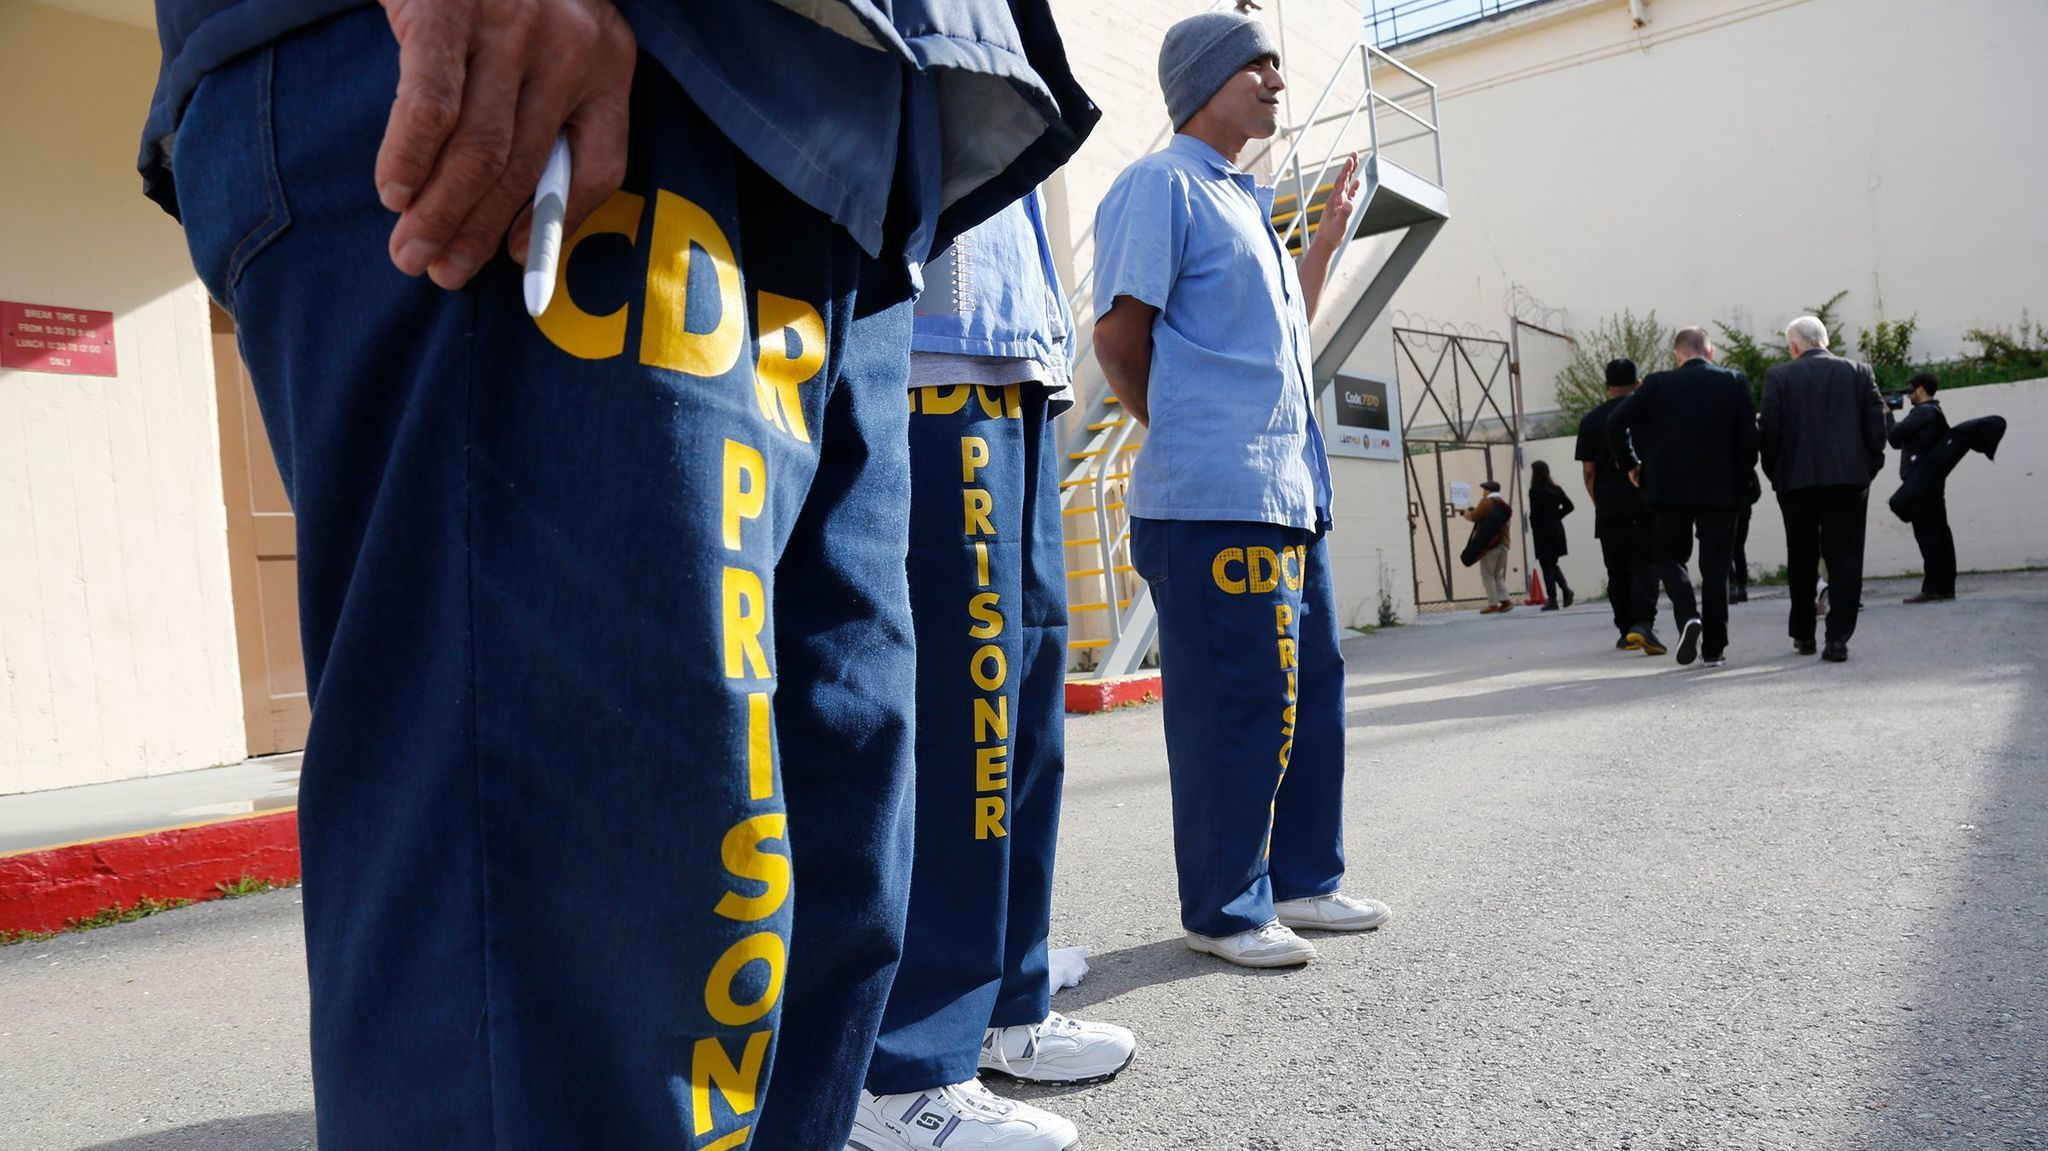 Inmates at San Quentin greet visitors arriving for graduation ceremonies for the Last Mile Works program.